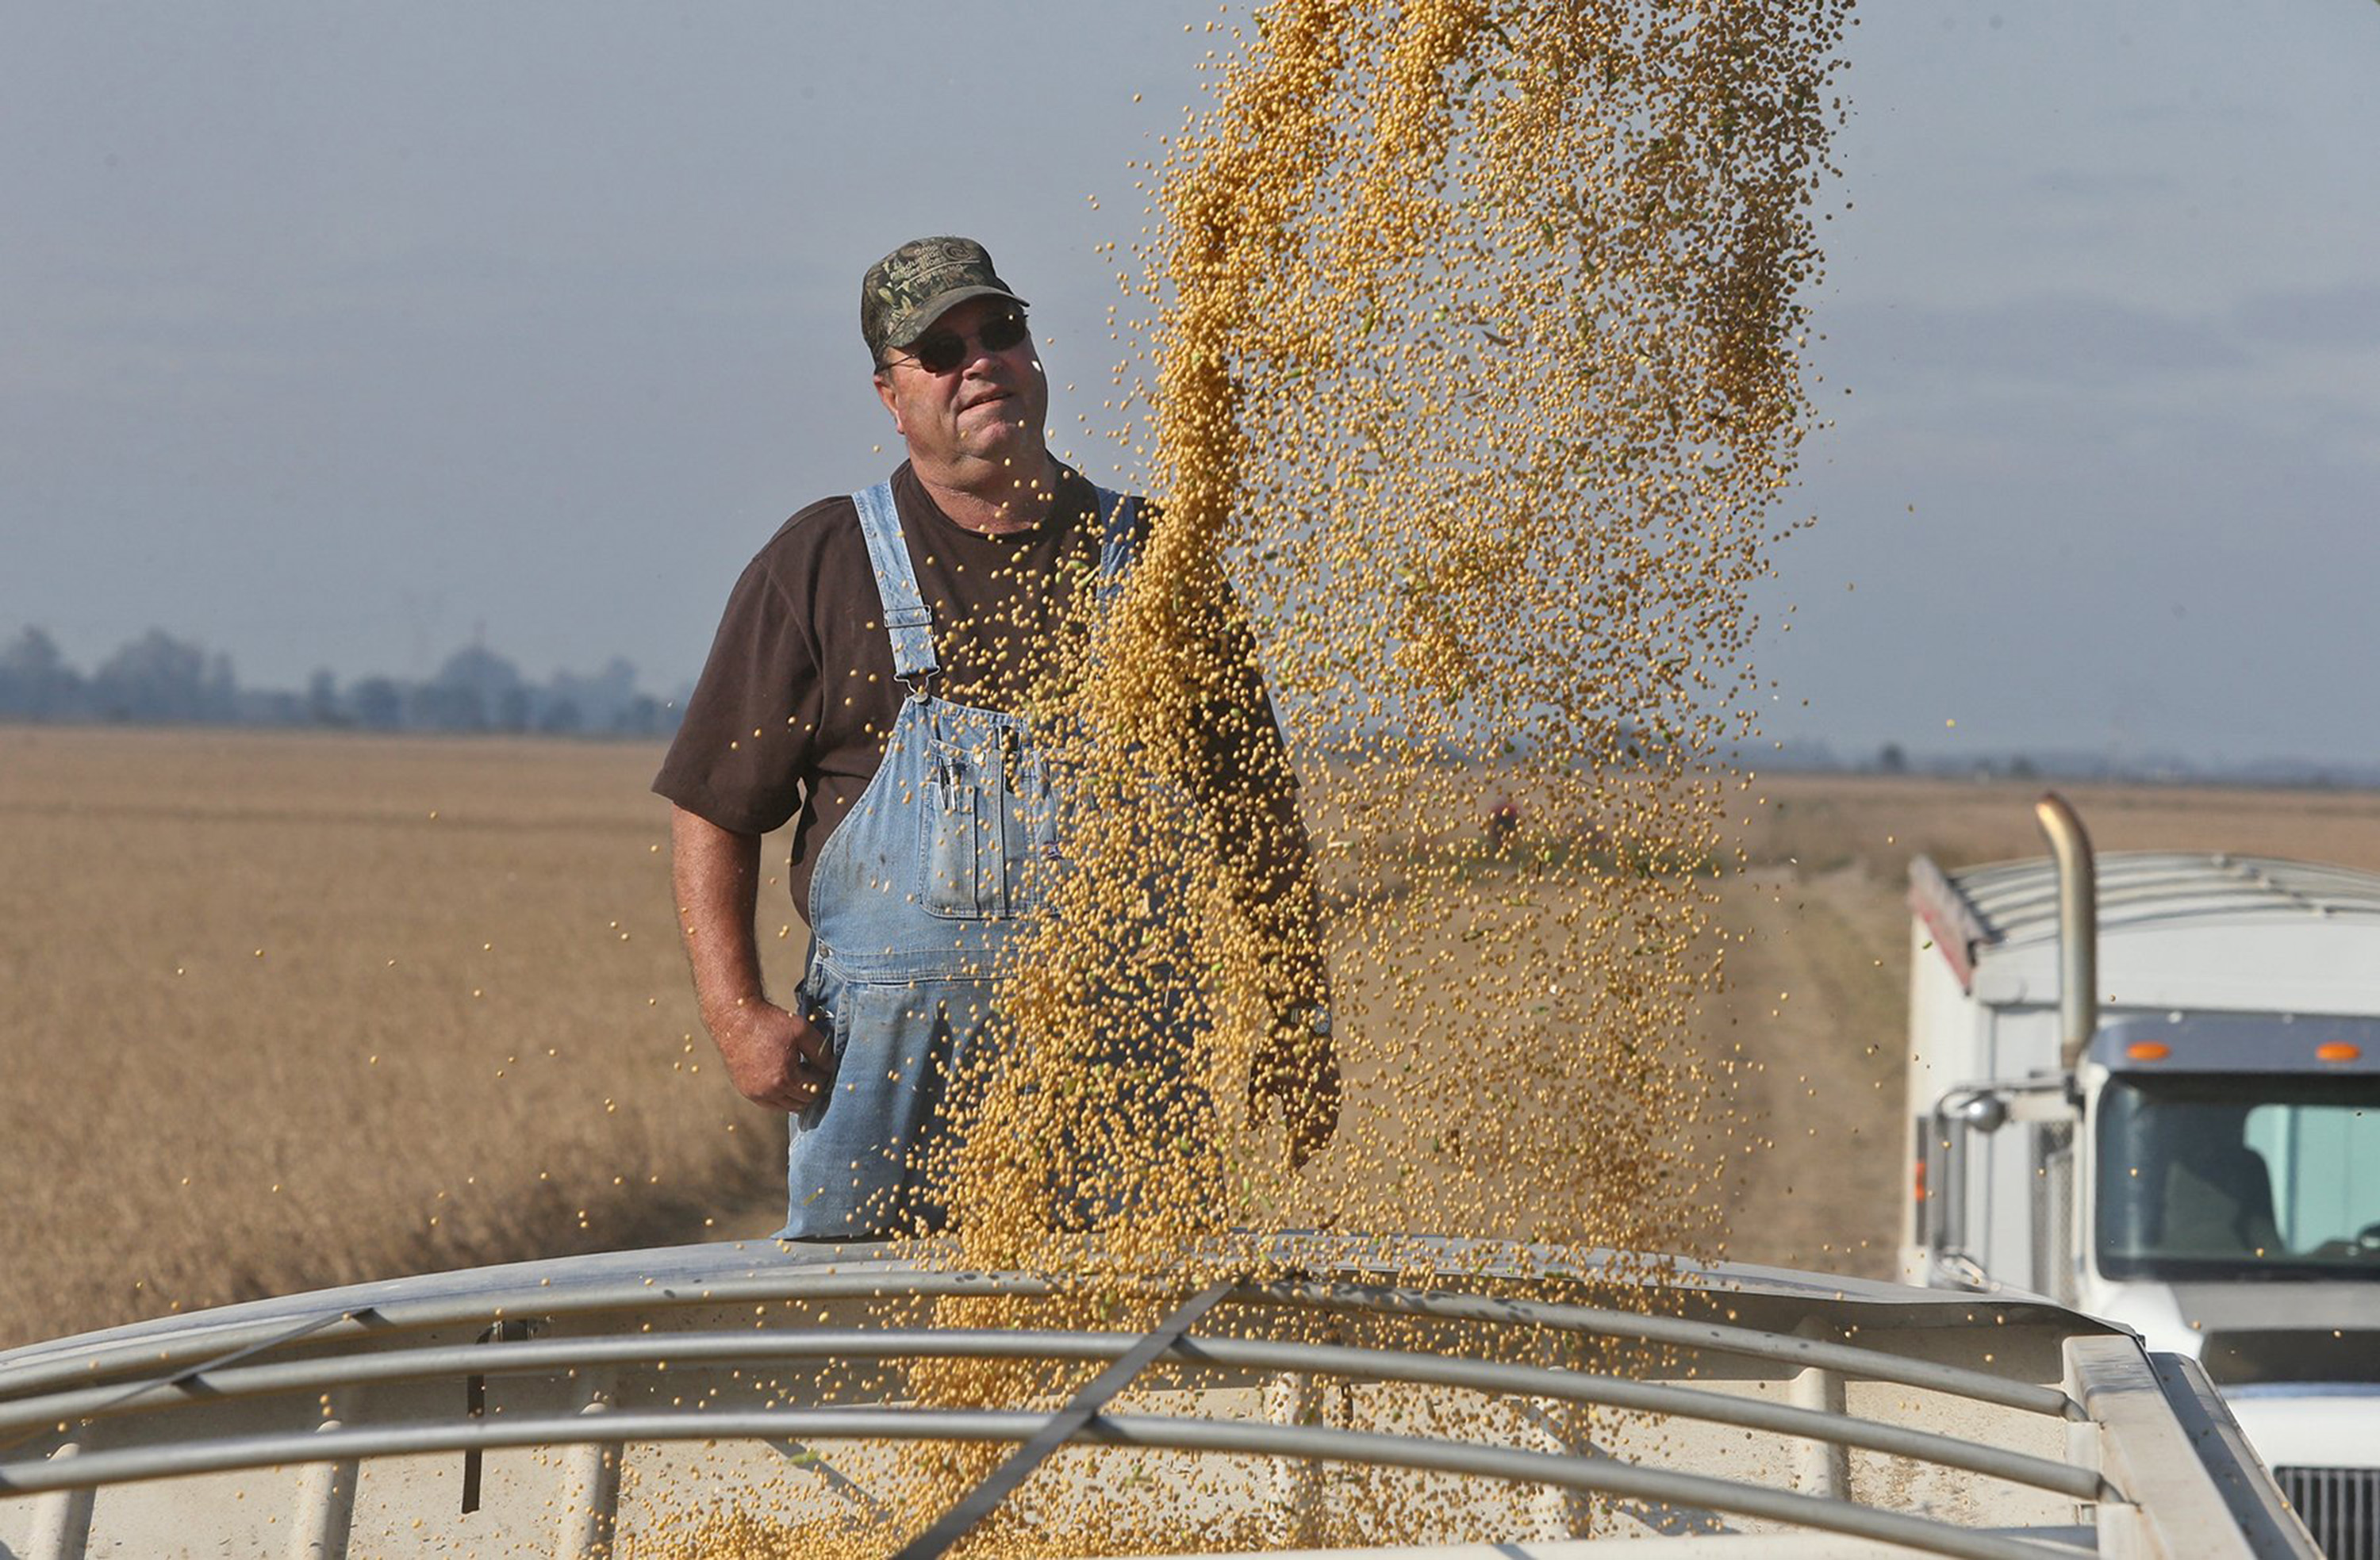 Truck driver Marion Howard watches soy beans load into his truck on October 1